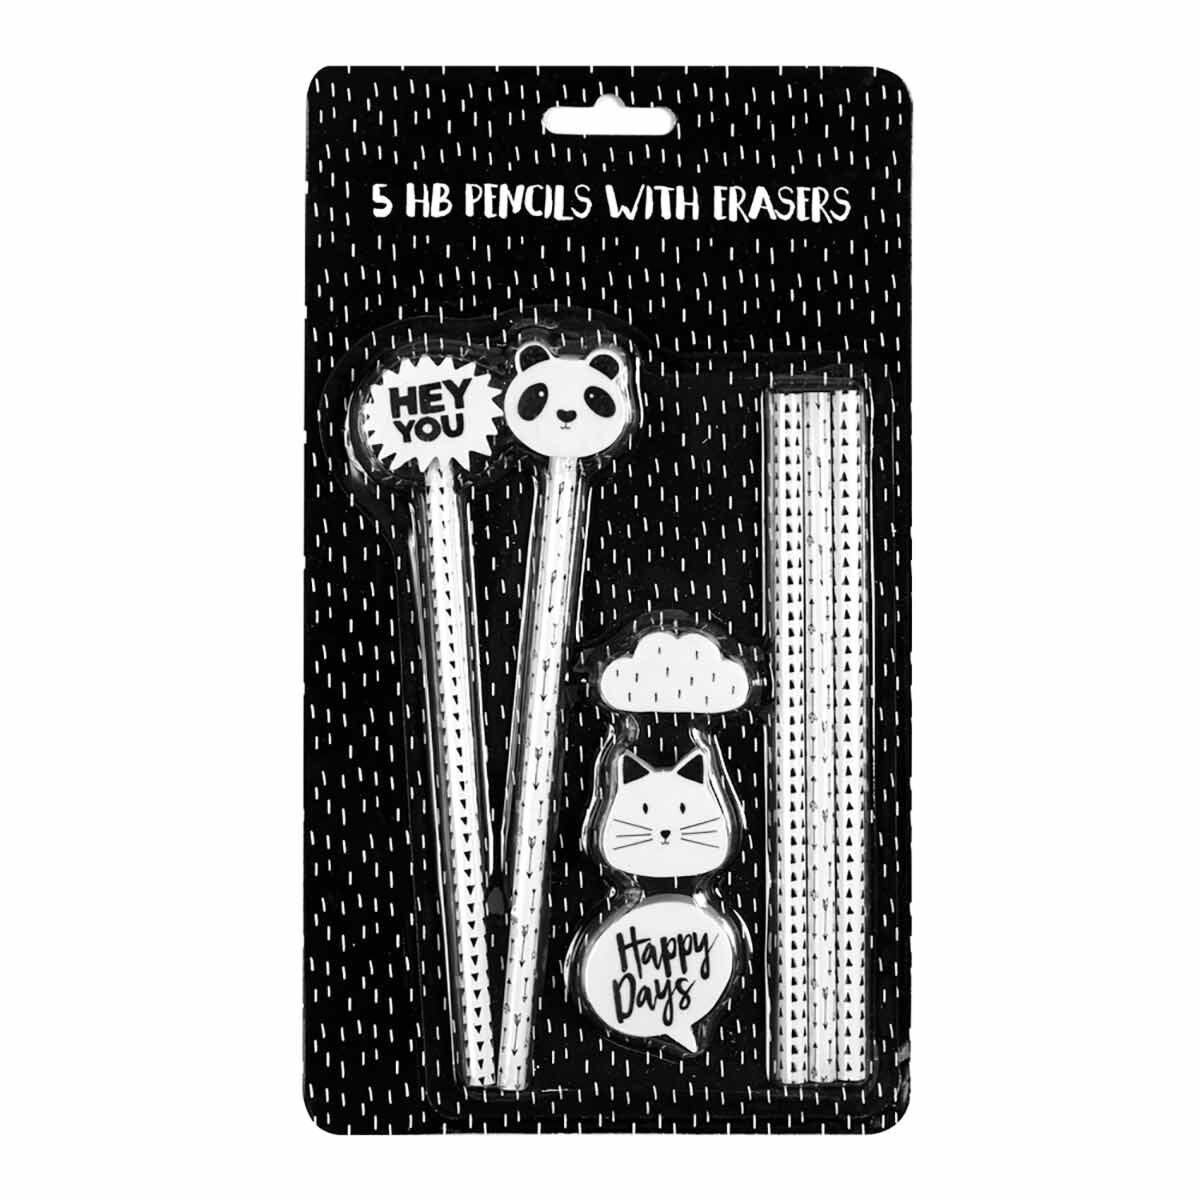 Panda Pencils with Eraser Toppers Pack of 5